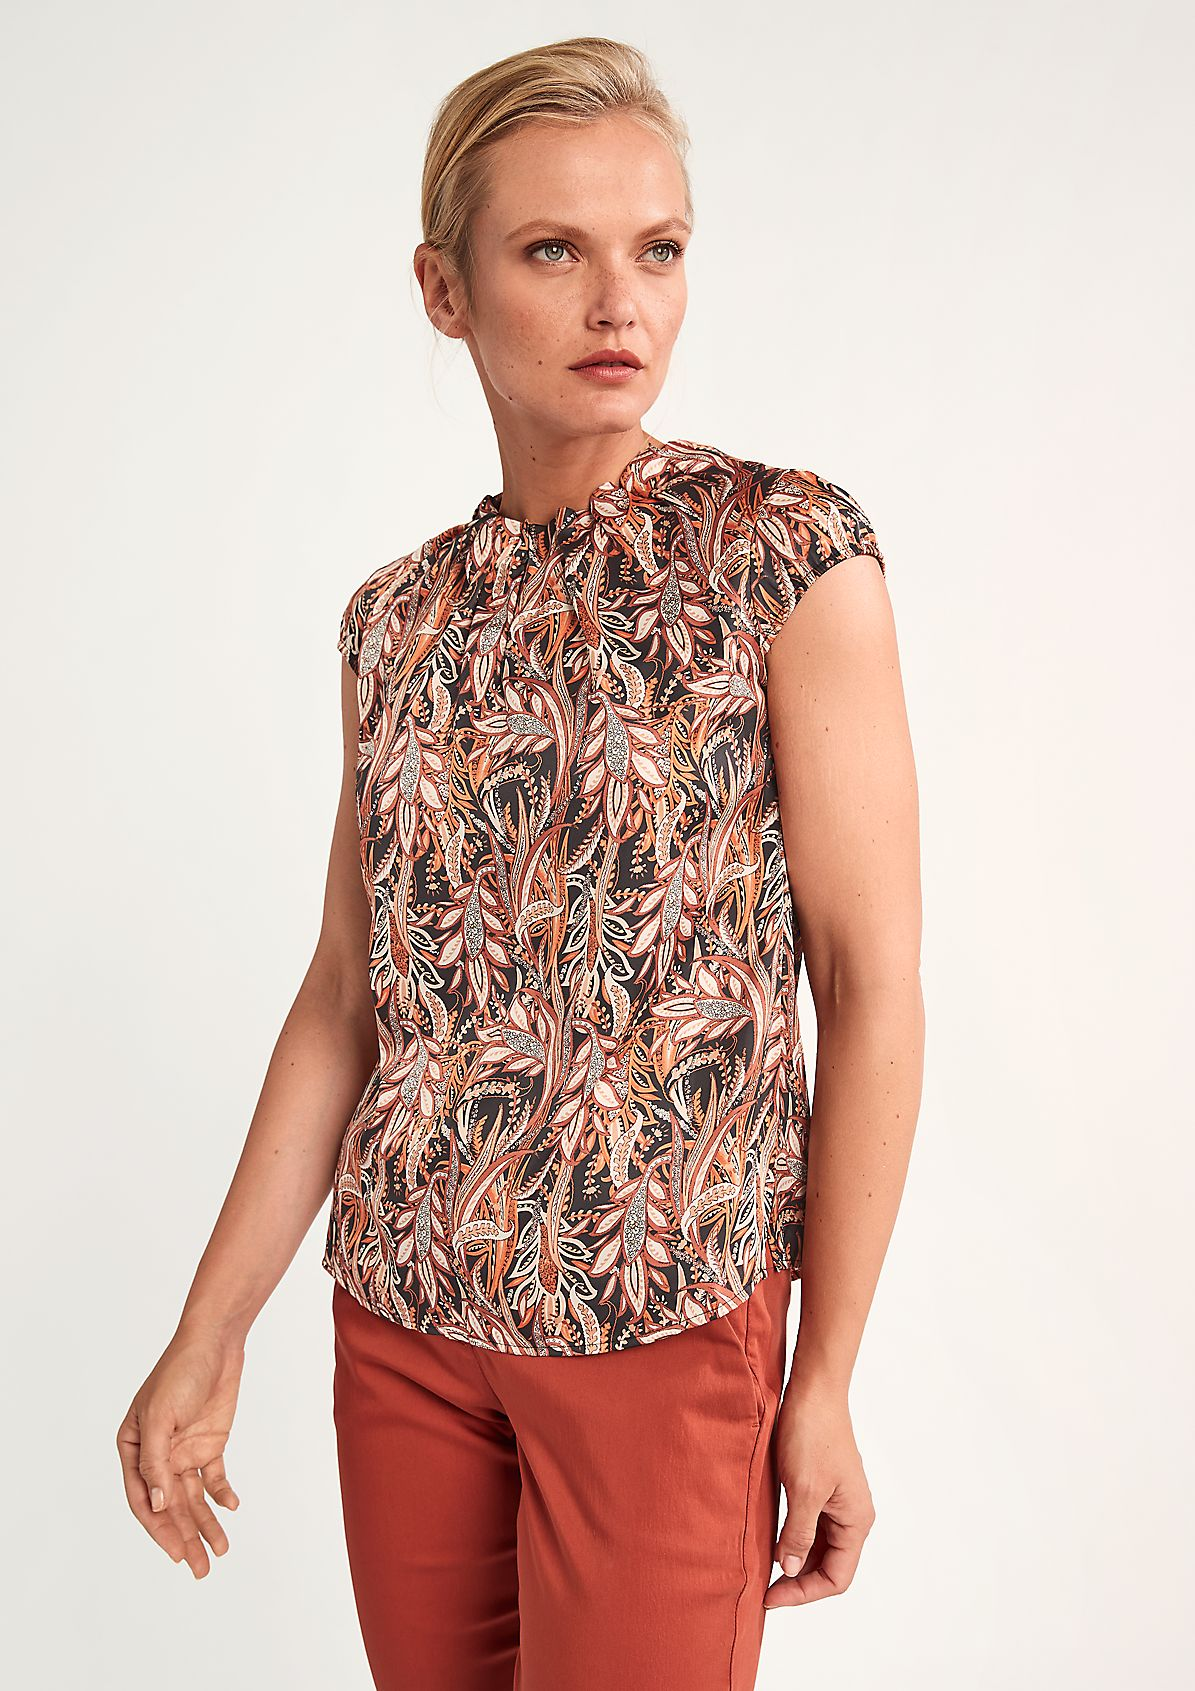 Satin blouse with a frill collar from comma